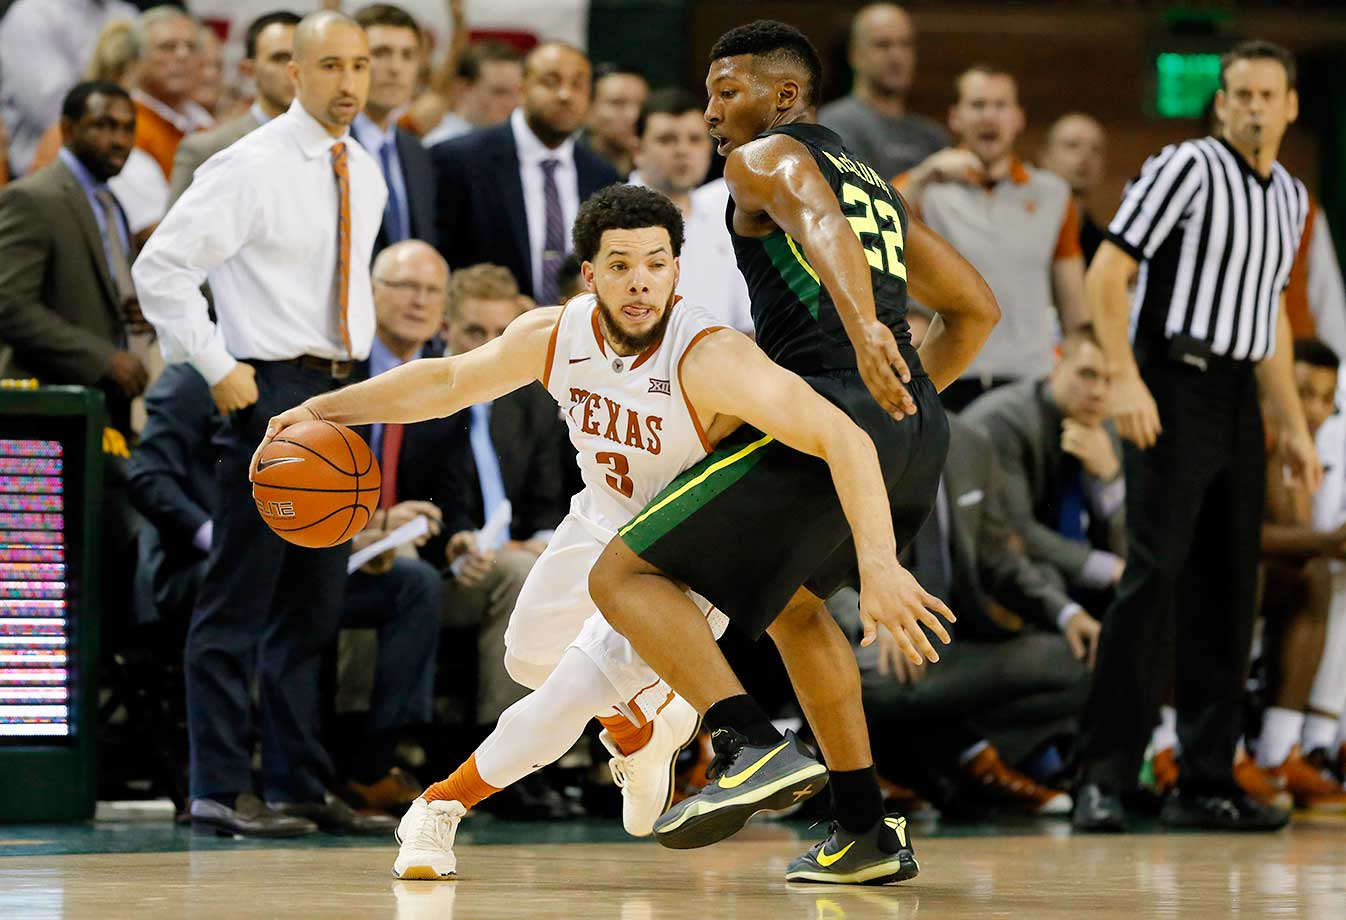 Texas guard Javan Felix drives around Baylor's King McClure in Waco. Texas won 67-59.